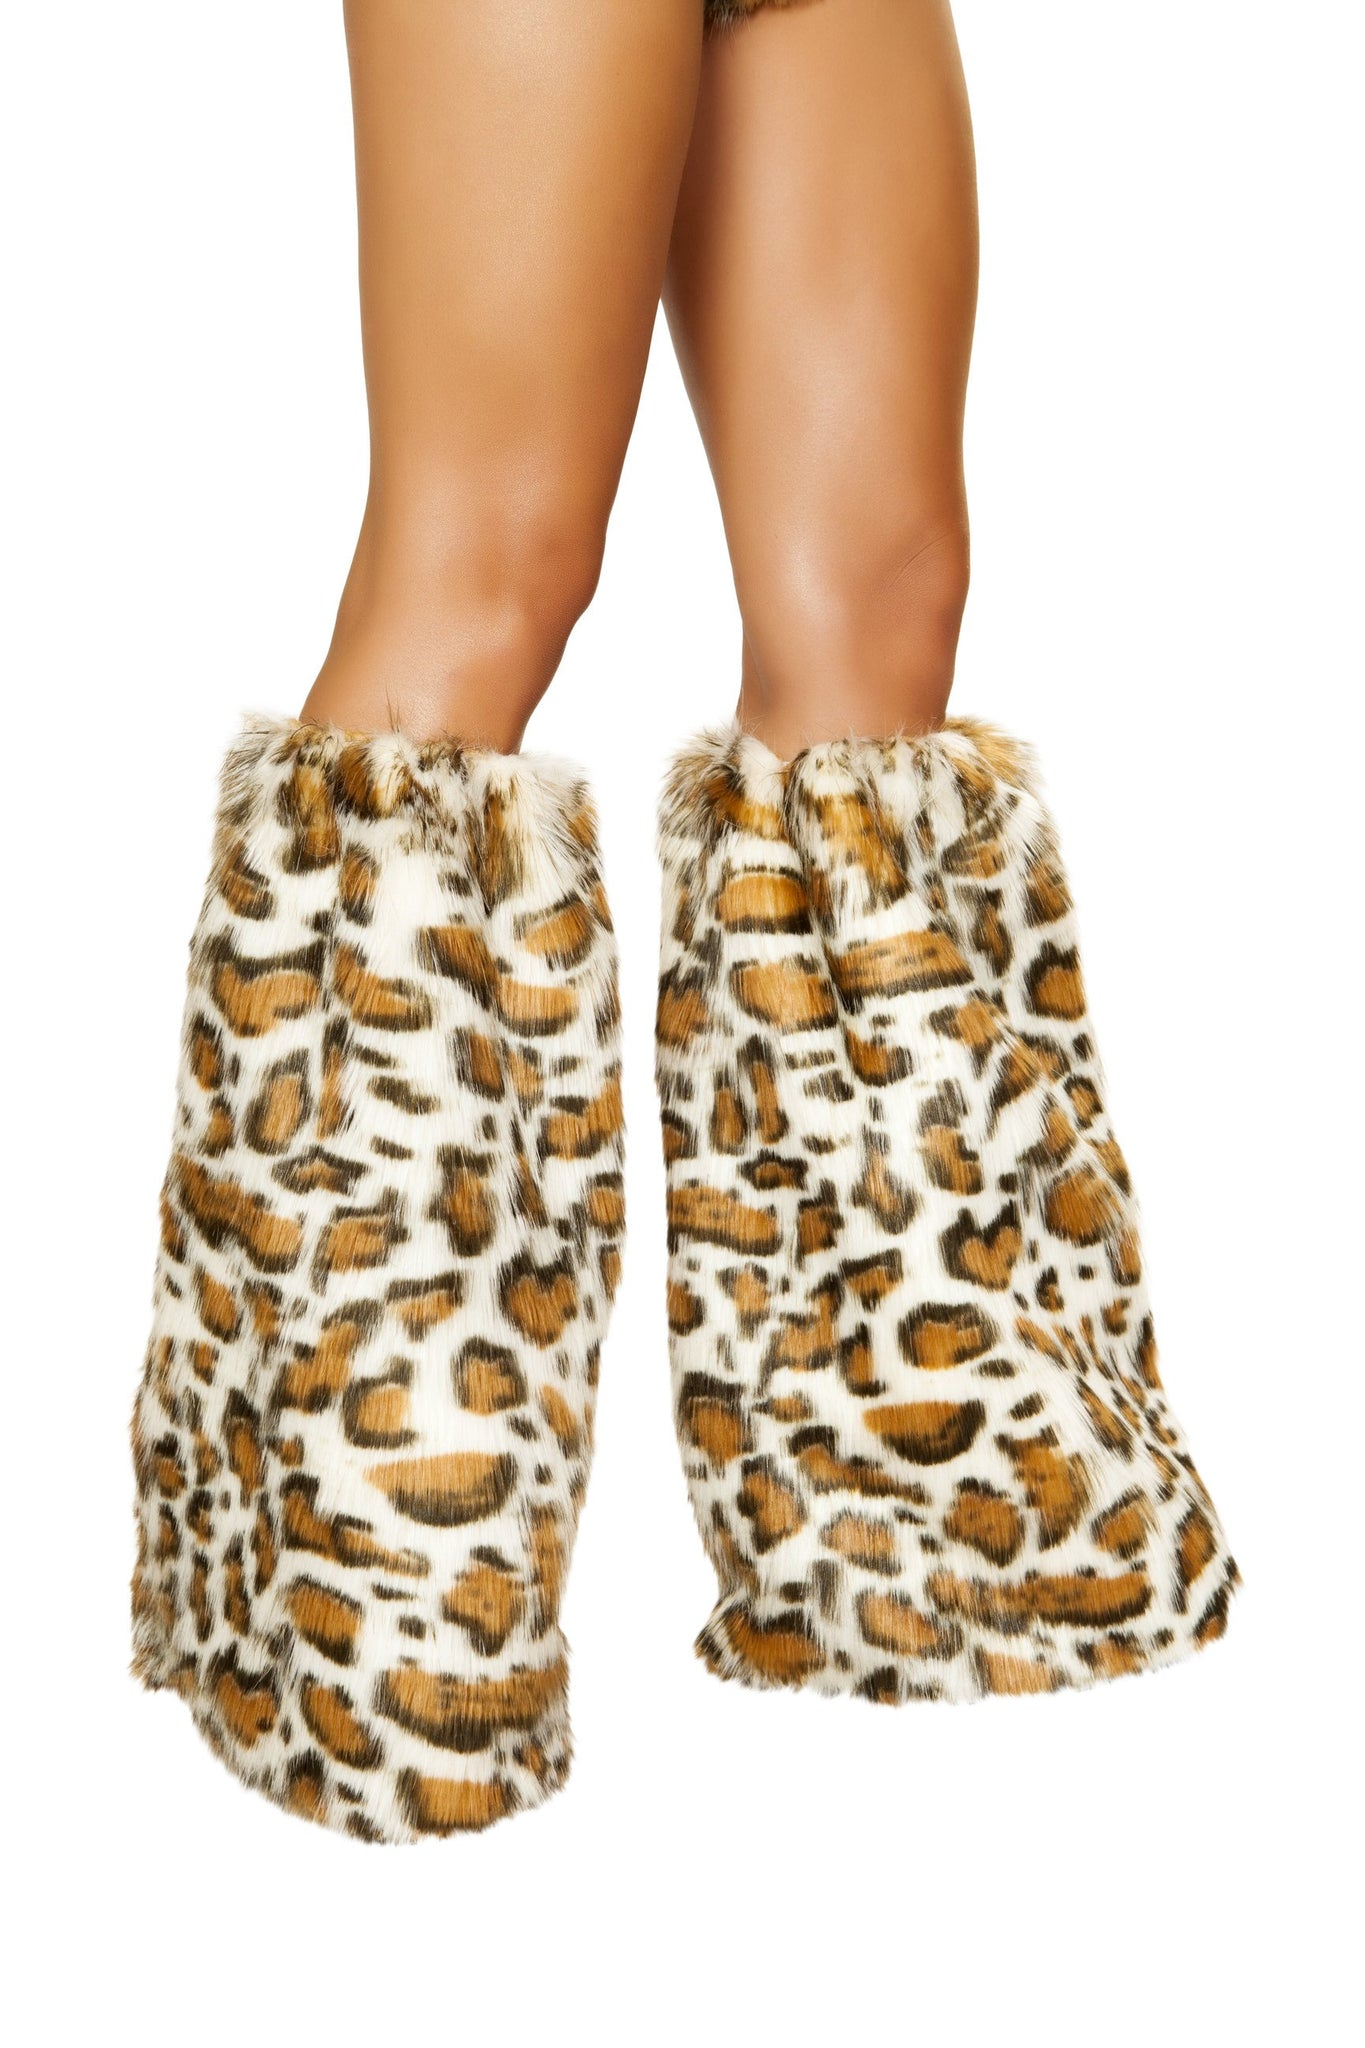 Pair of Leopard Leg Warmers